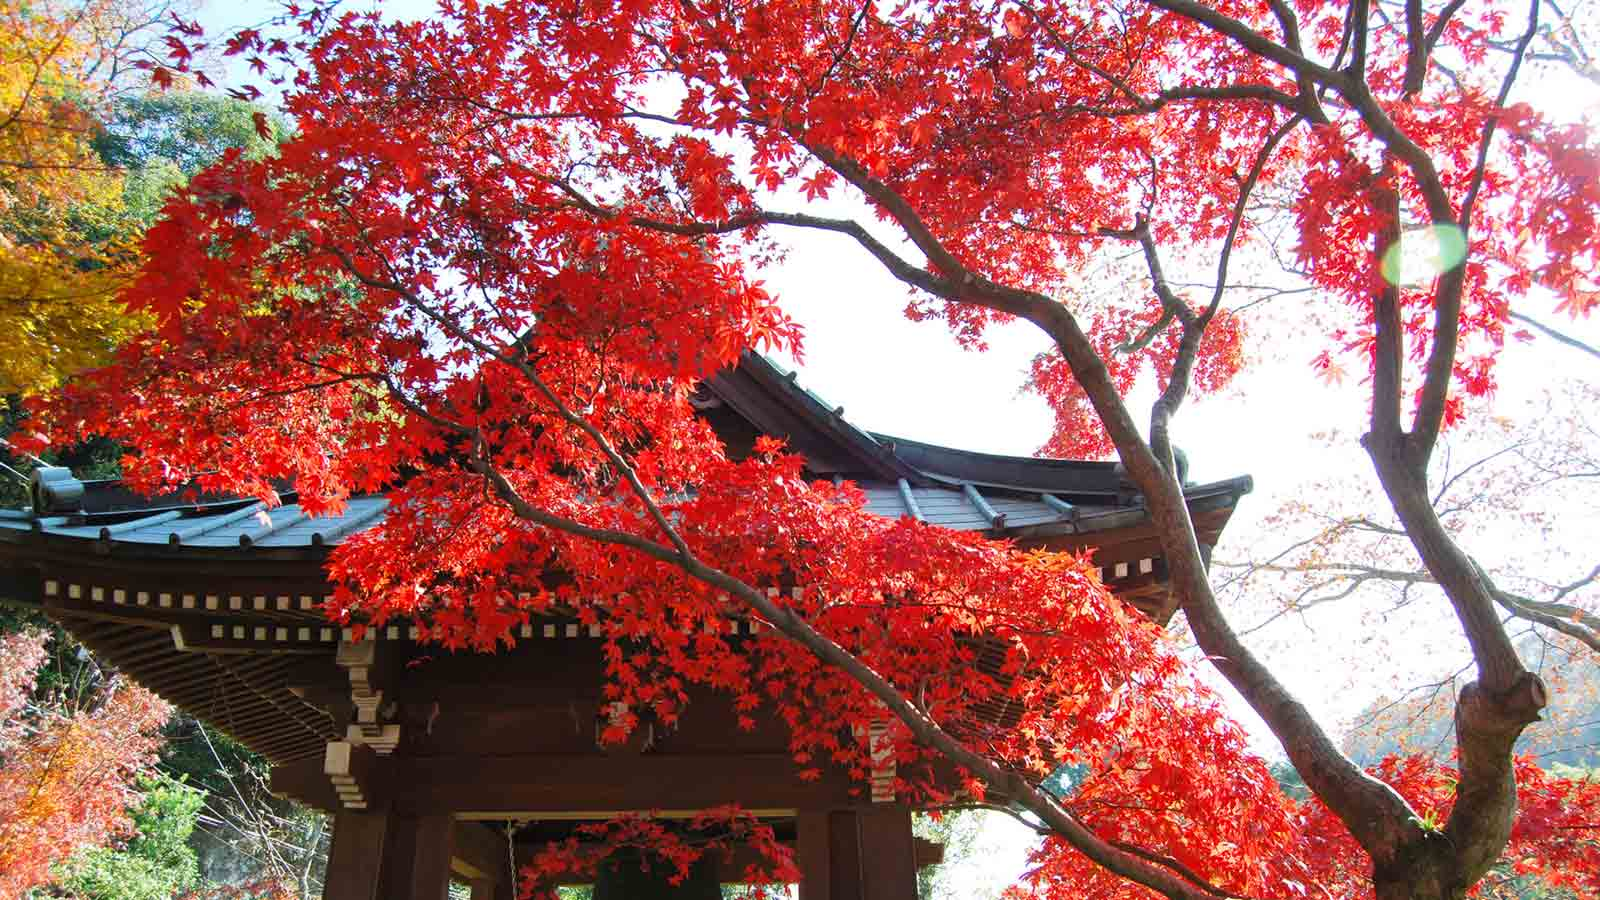 Late Fall Desktop Wallpaper Autumn Colors In Kamakura 8 Classic Temples With